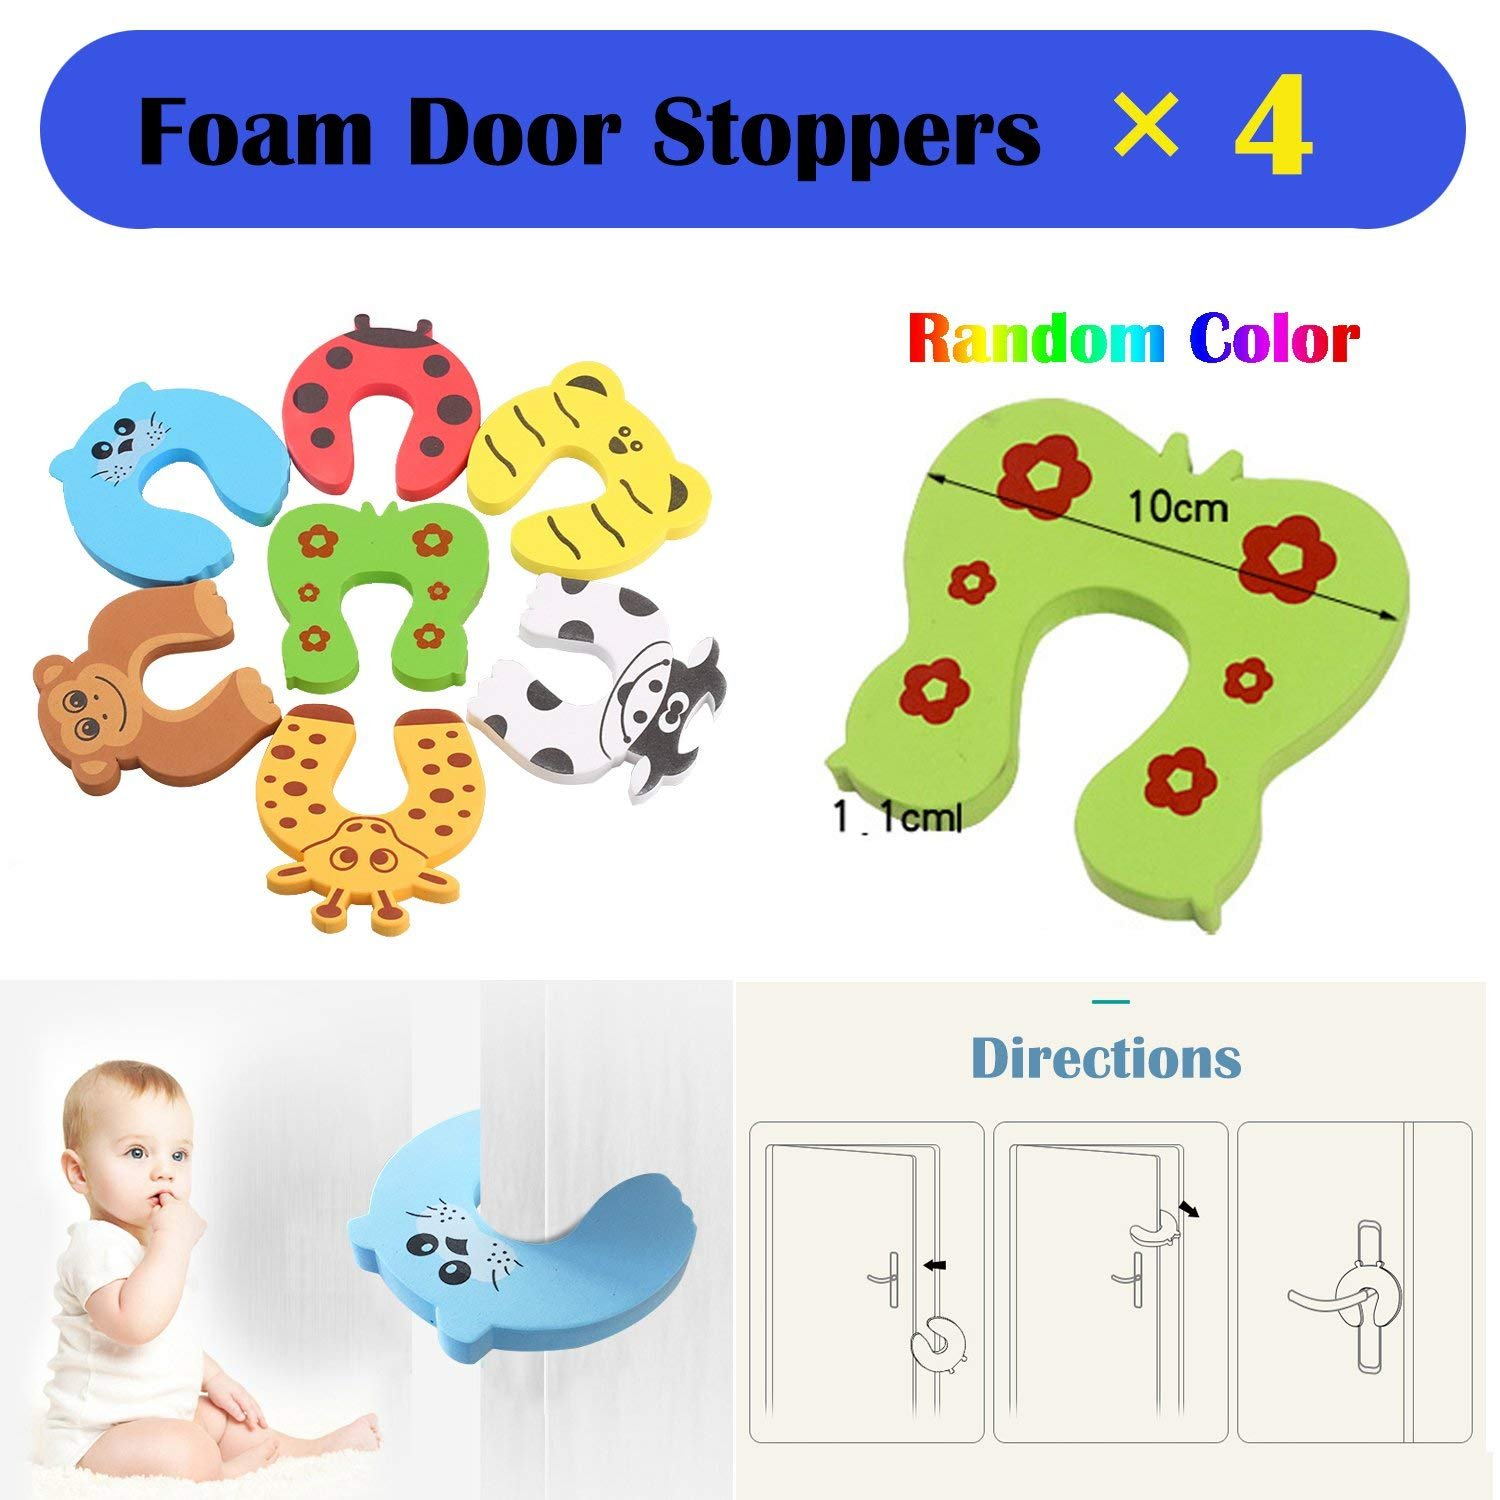 Baby Safety Proofing Kits (56 Pack) 20Pcs Outlet Covers +6Pcs Child Safety Proofing Cabinet Locks+ 20Pcs Corner Protector Edge Guard+ 6Pcs Children Cupboard Locks + 4Pcs Kids Safety Foam Door Stoppers by HOMER (Image #9)